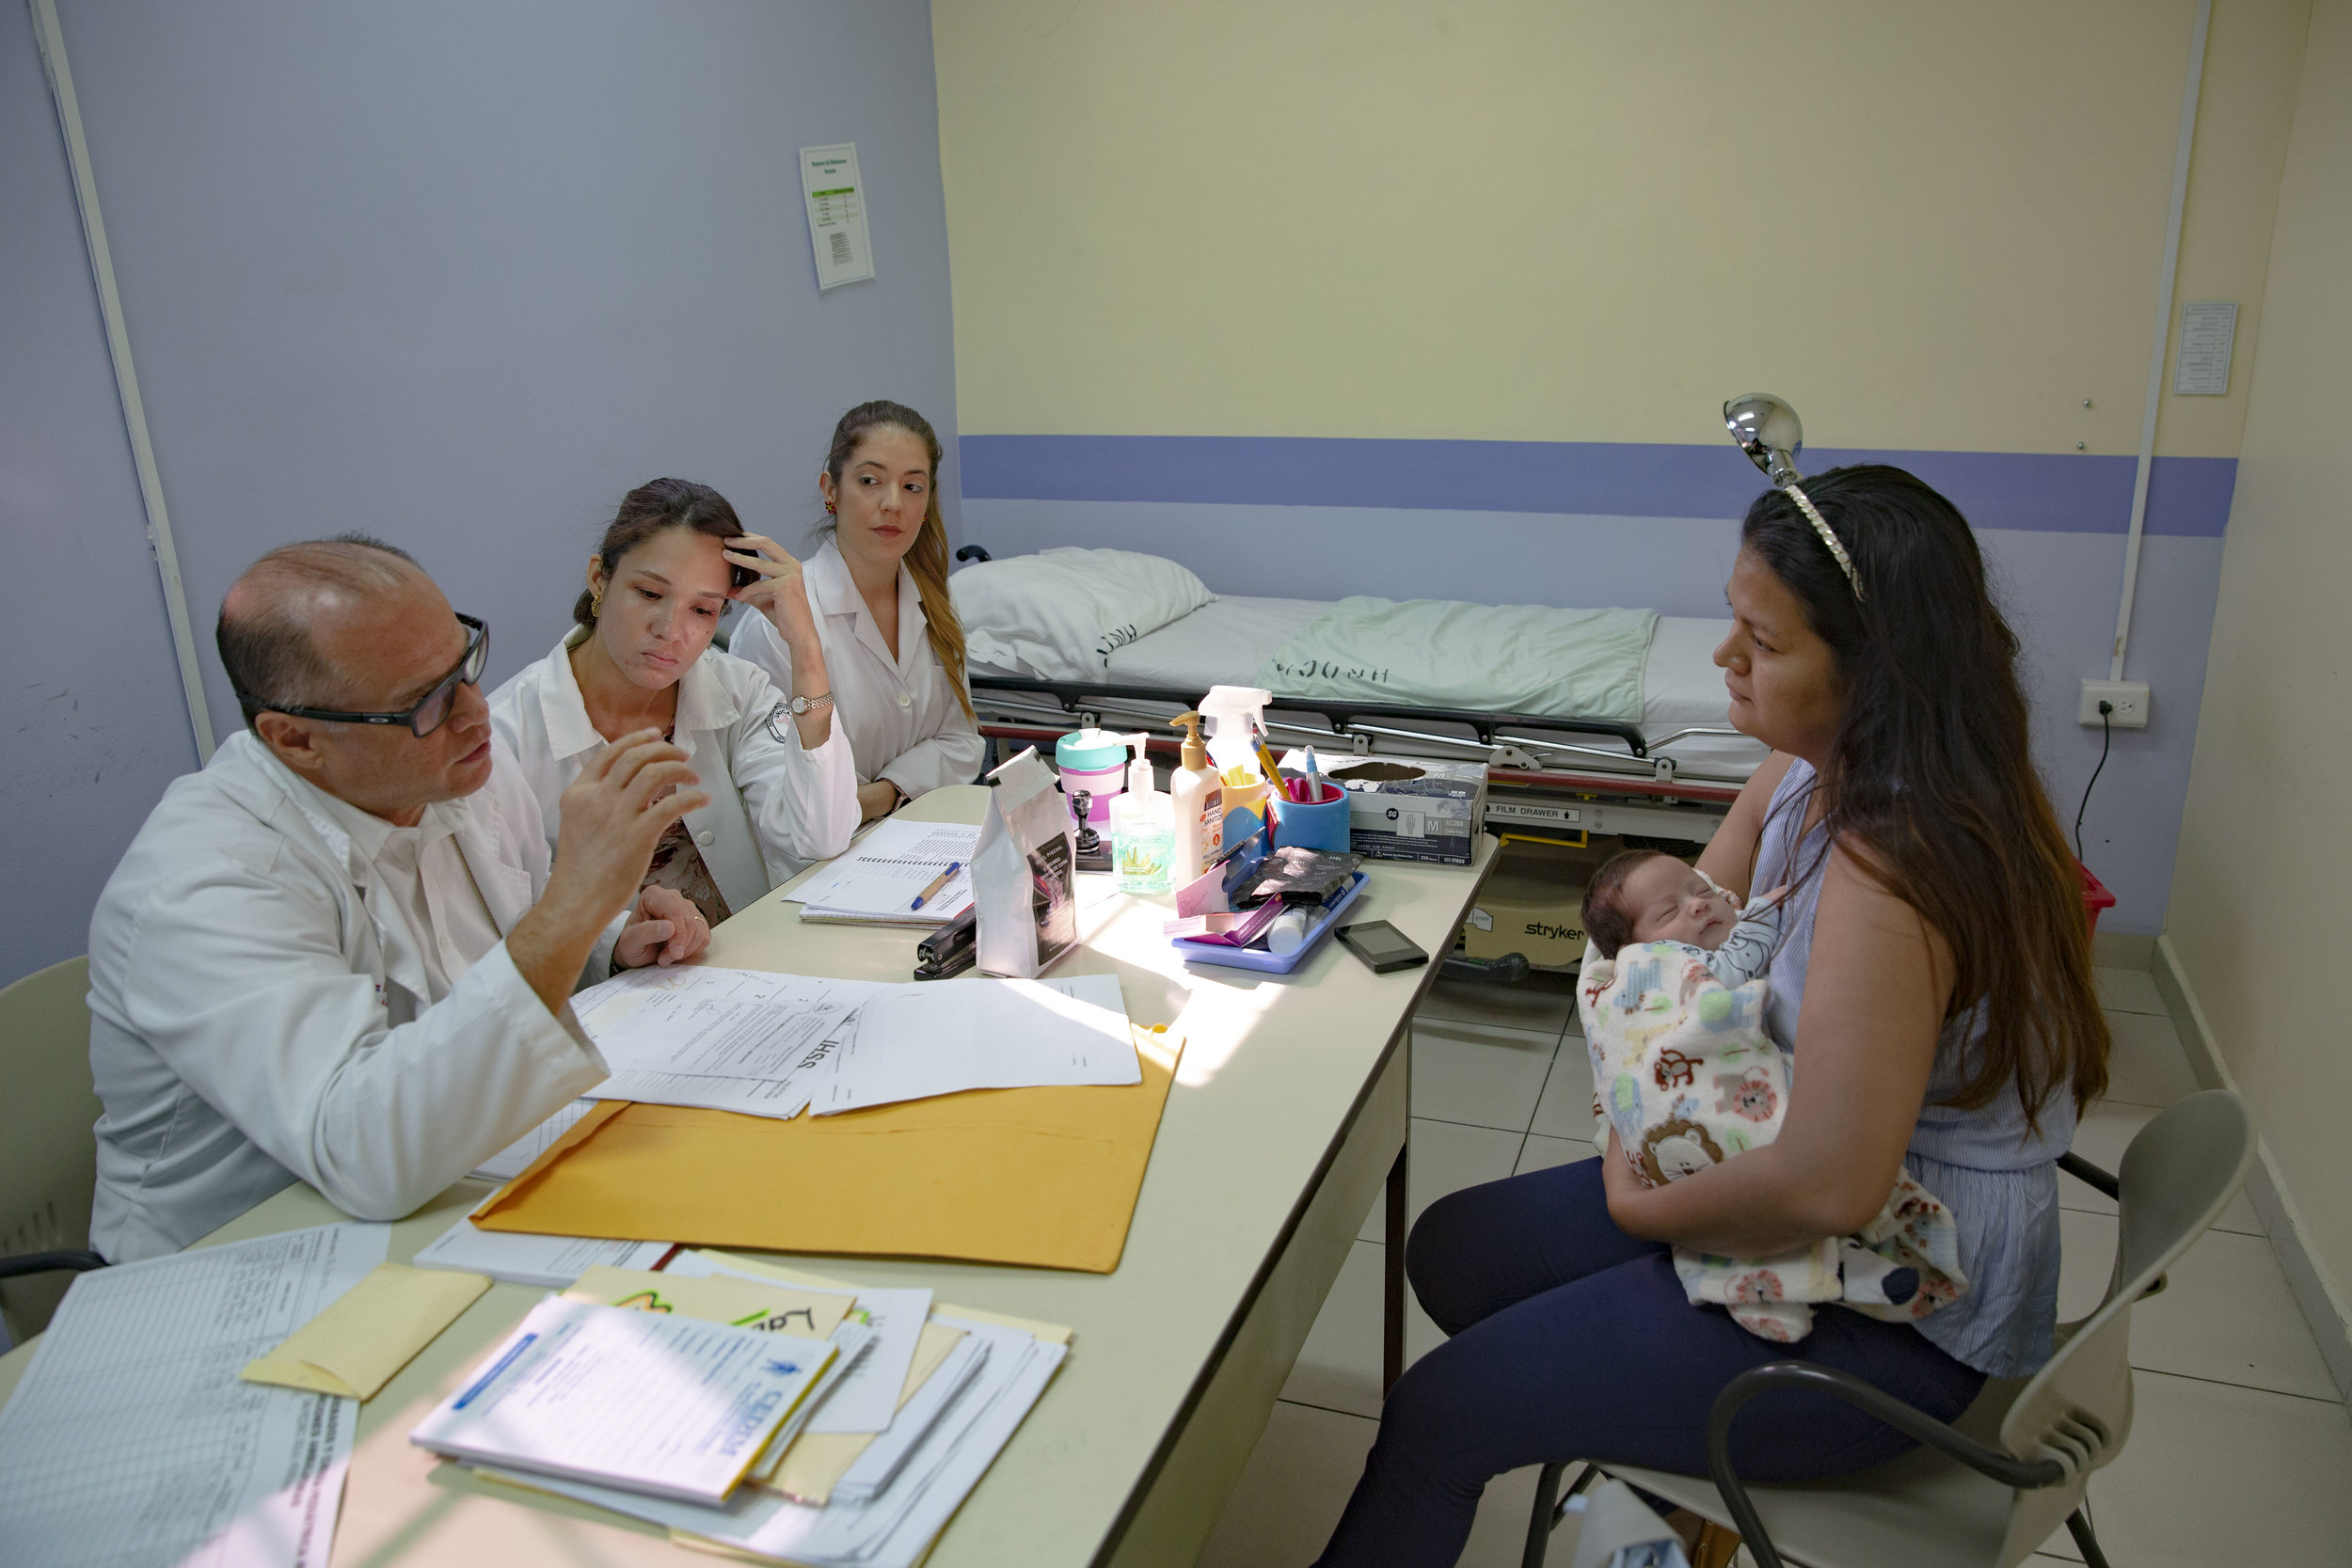 Doctor Craniotti, head of the Ruth Paz hospital in San Pedro Sula and pedriatic surgeon specialized in anorectal disfunctions speak to a mother and her little baby alongisde his assistans.